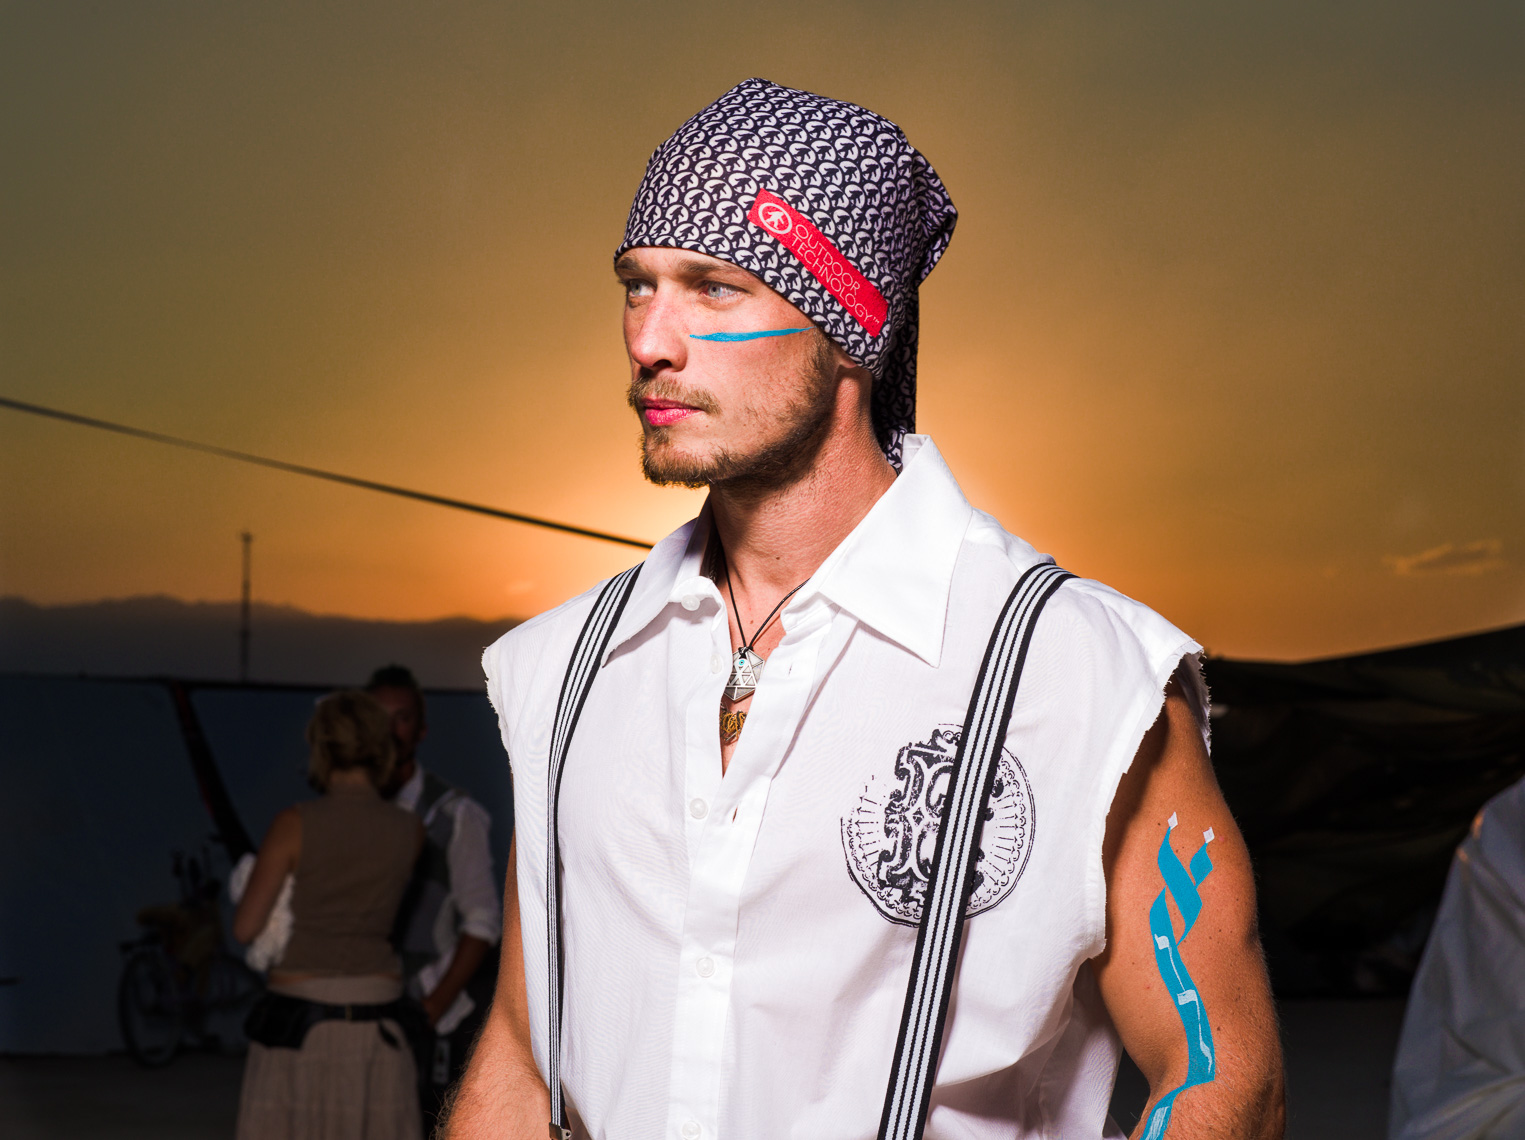 Eric_Schwabel-Burning Man 2013_008334-Edit